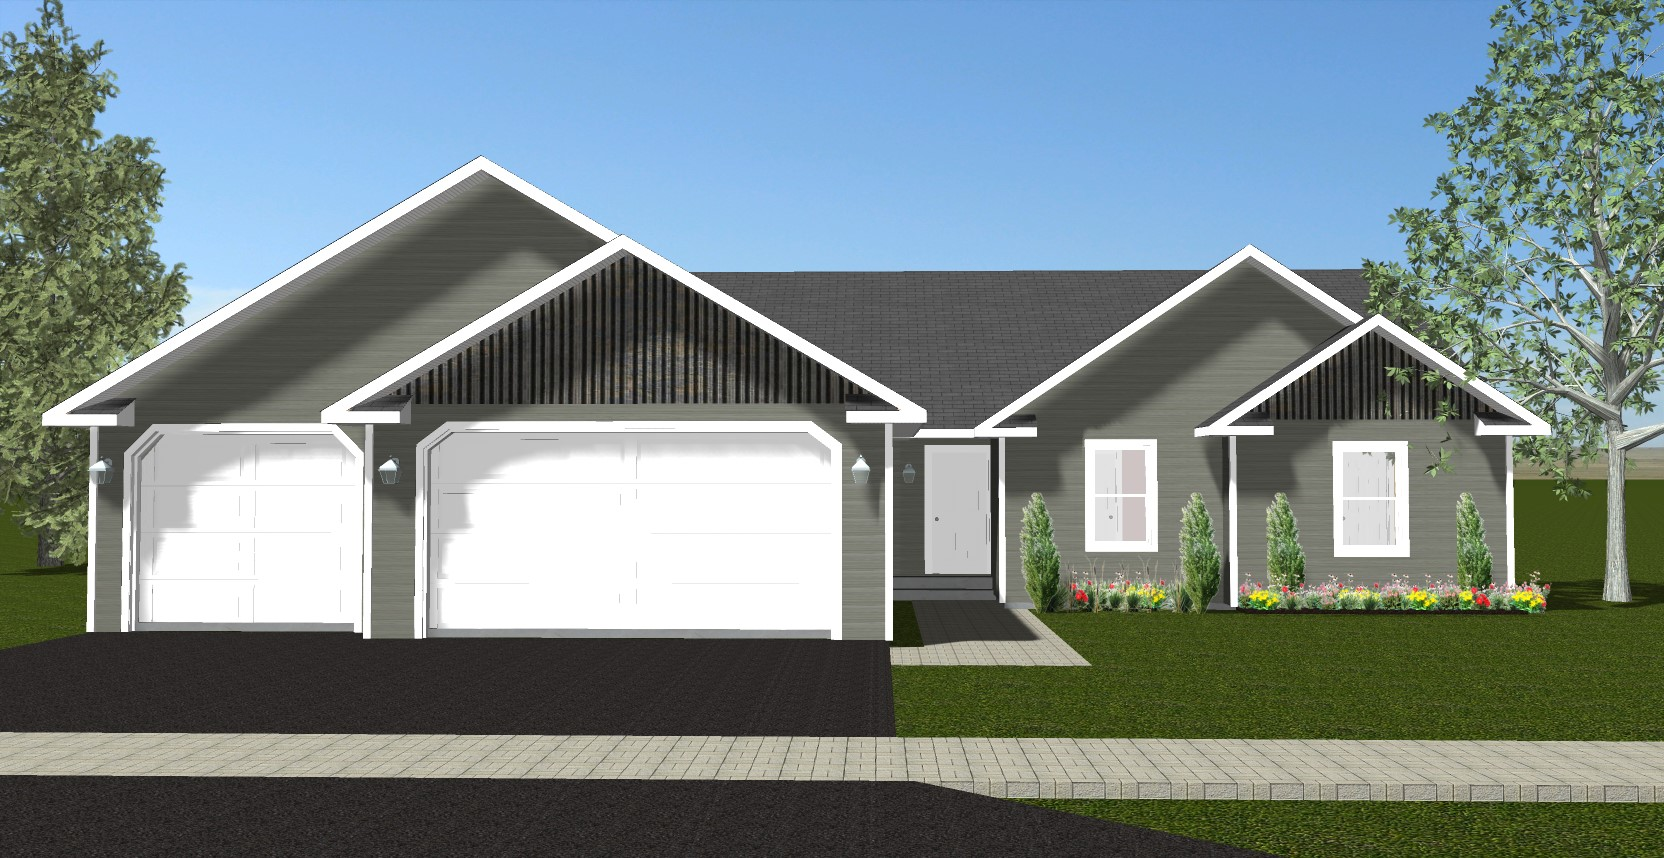 //kibhomes.com/wp-content/uploads/2020/04/FRONT-VIEW-2.jpg